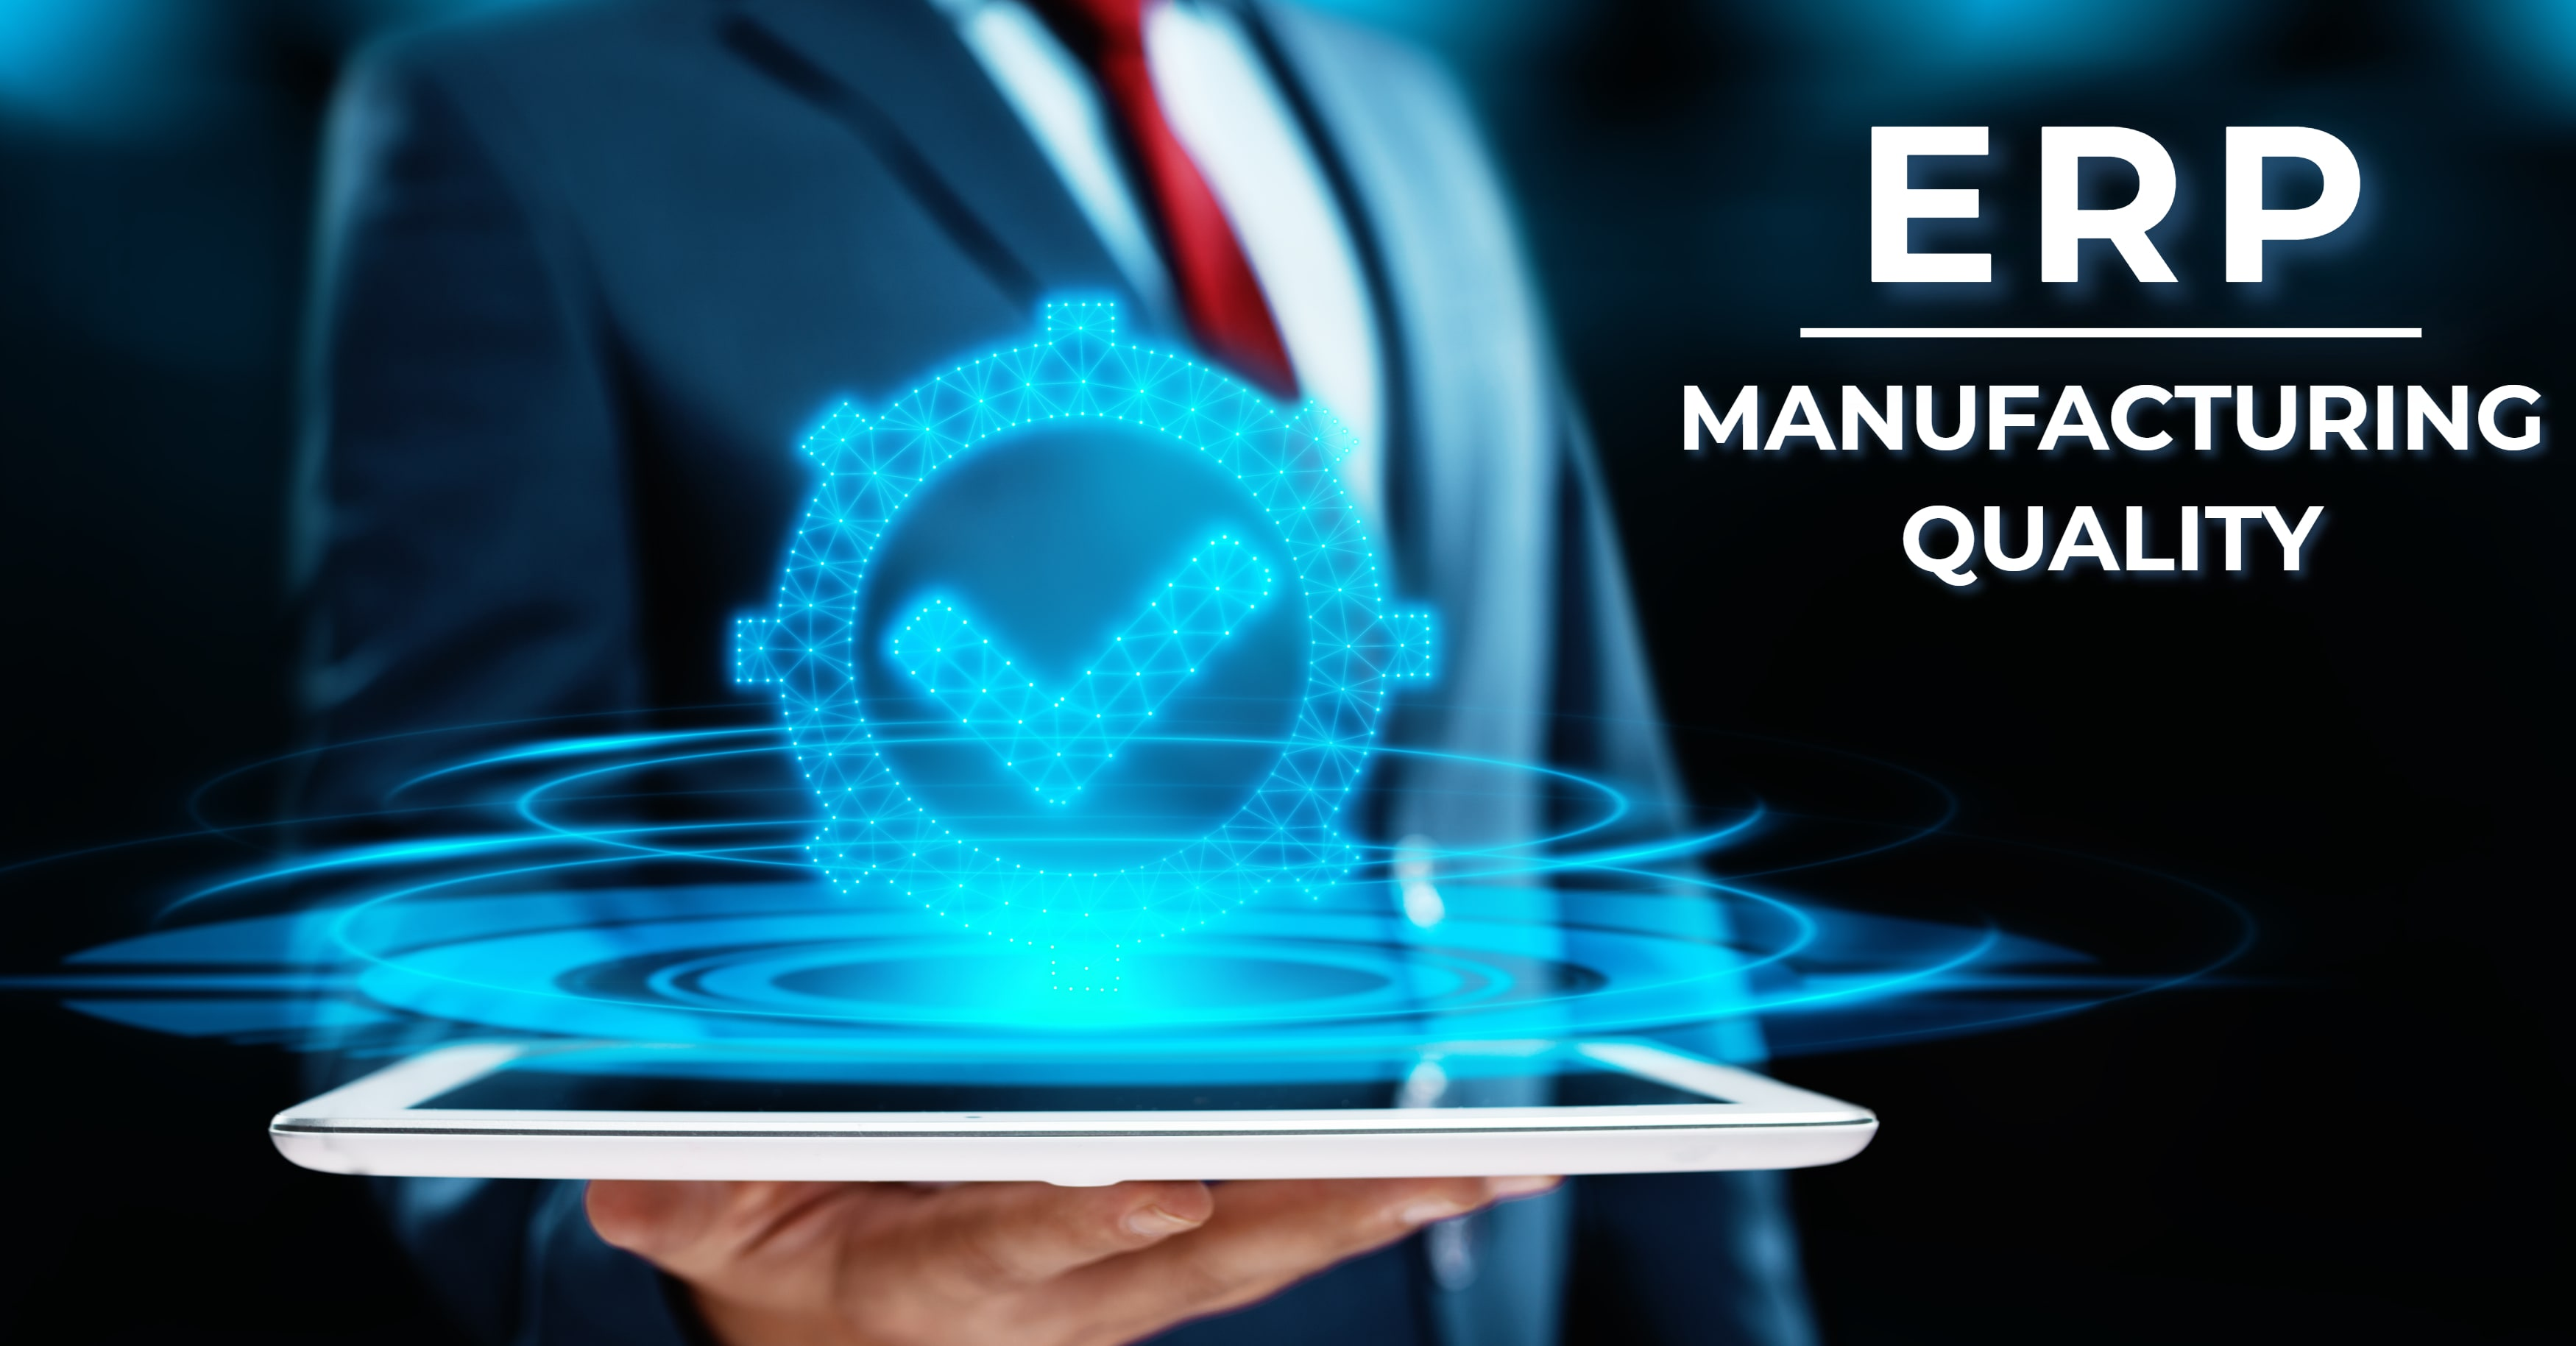 Control Manufacturing Quality with ERP